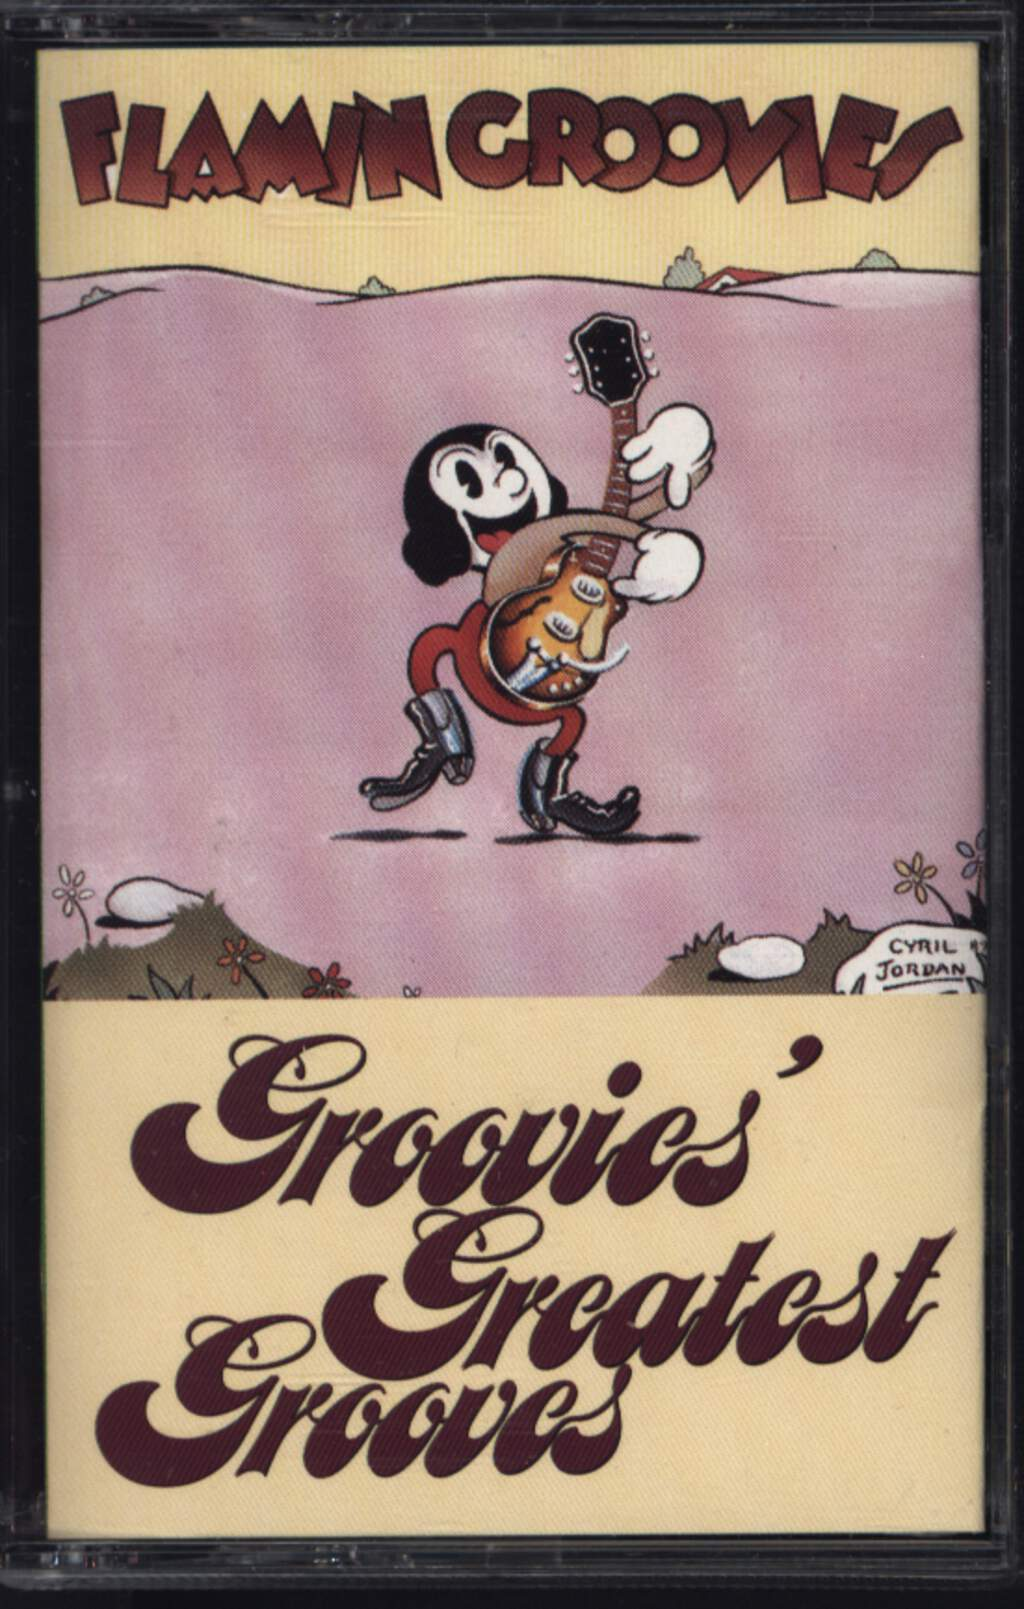 The Flamin' Groovies: Groovies' Greatest Grooves, Compact Cassette